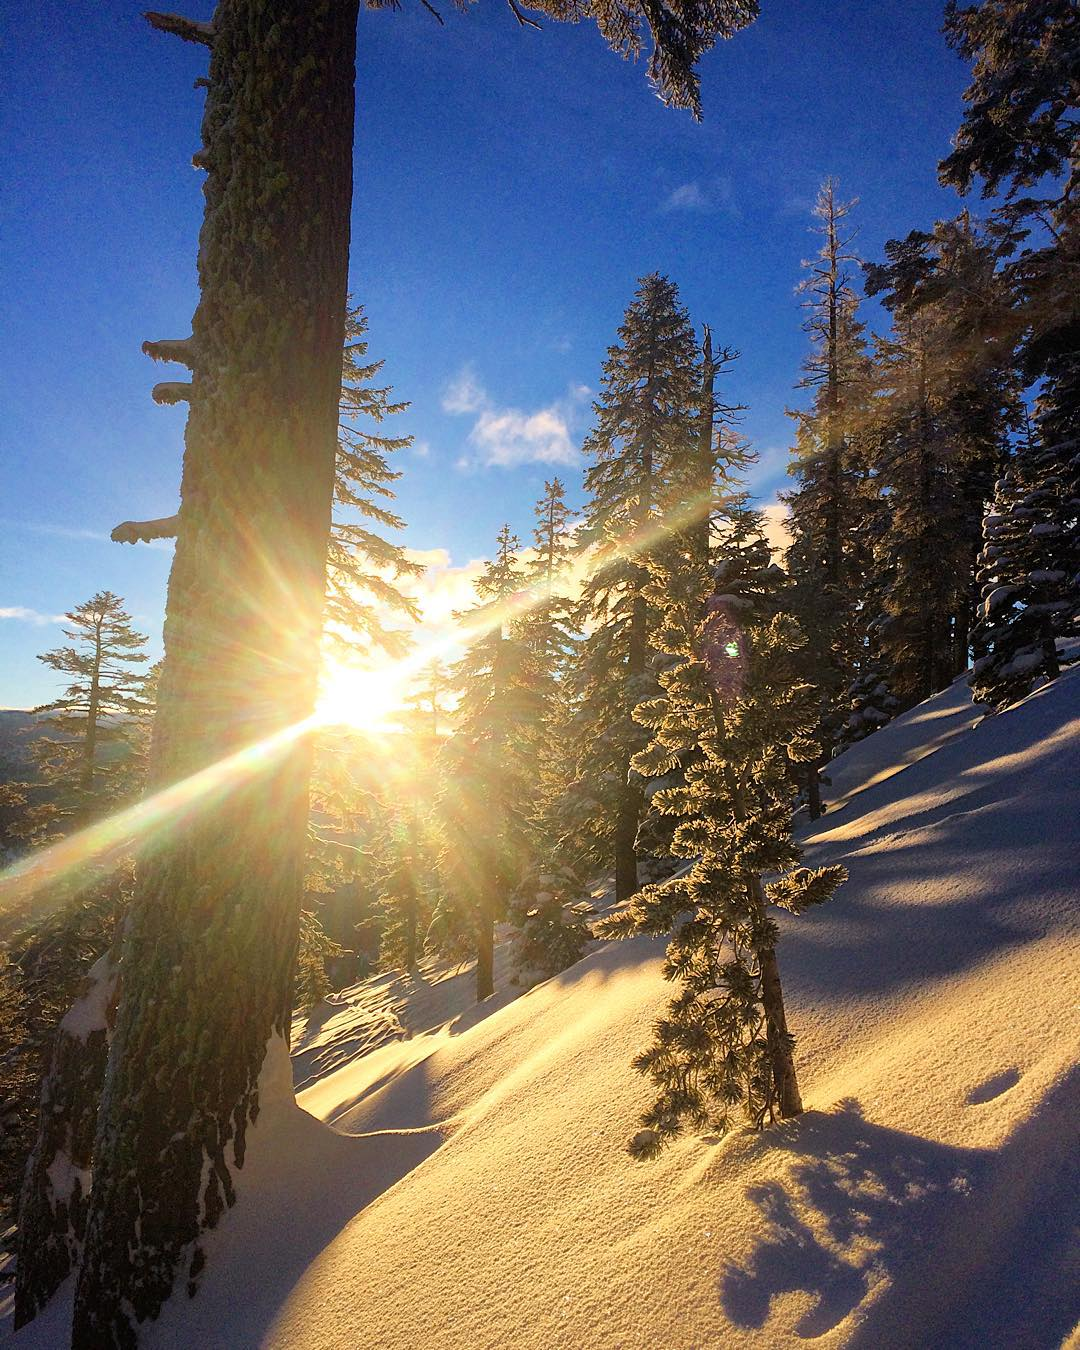 A little bit of powder for breakfast this morning. #risedesigns #risedesignstahoe #inspiredbynature #meyerspride #tahoebackcountry #goldenhour #dawnpatrol #sunrise #sunbeams #tahoelife